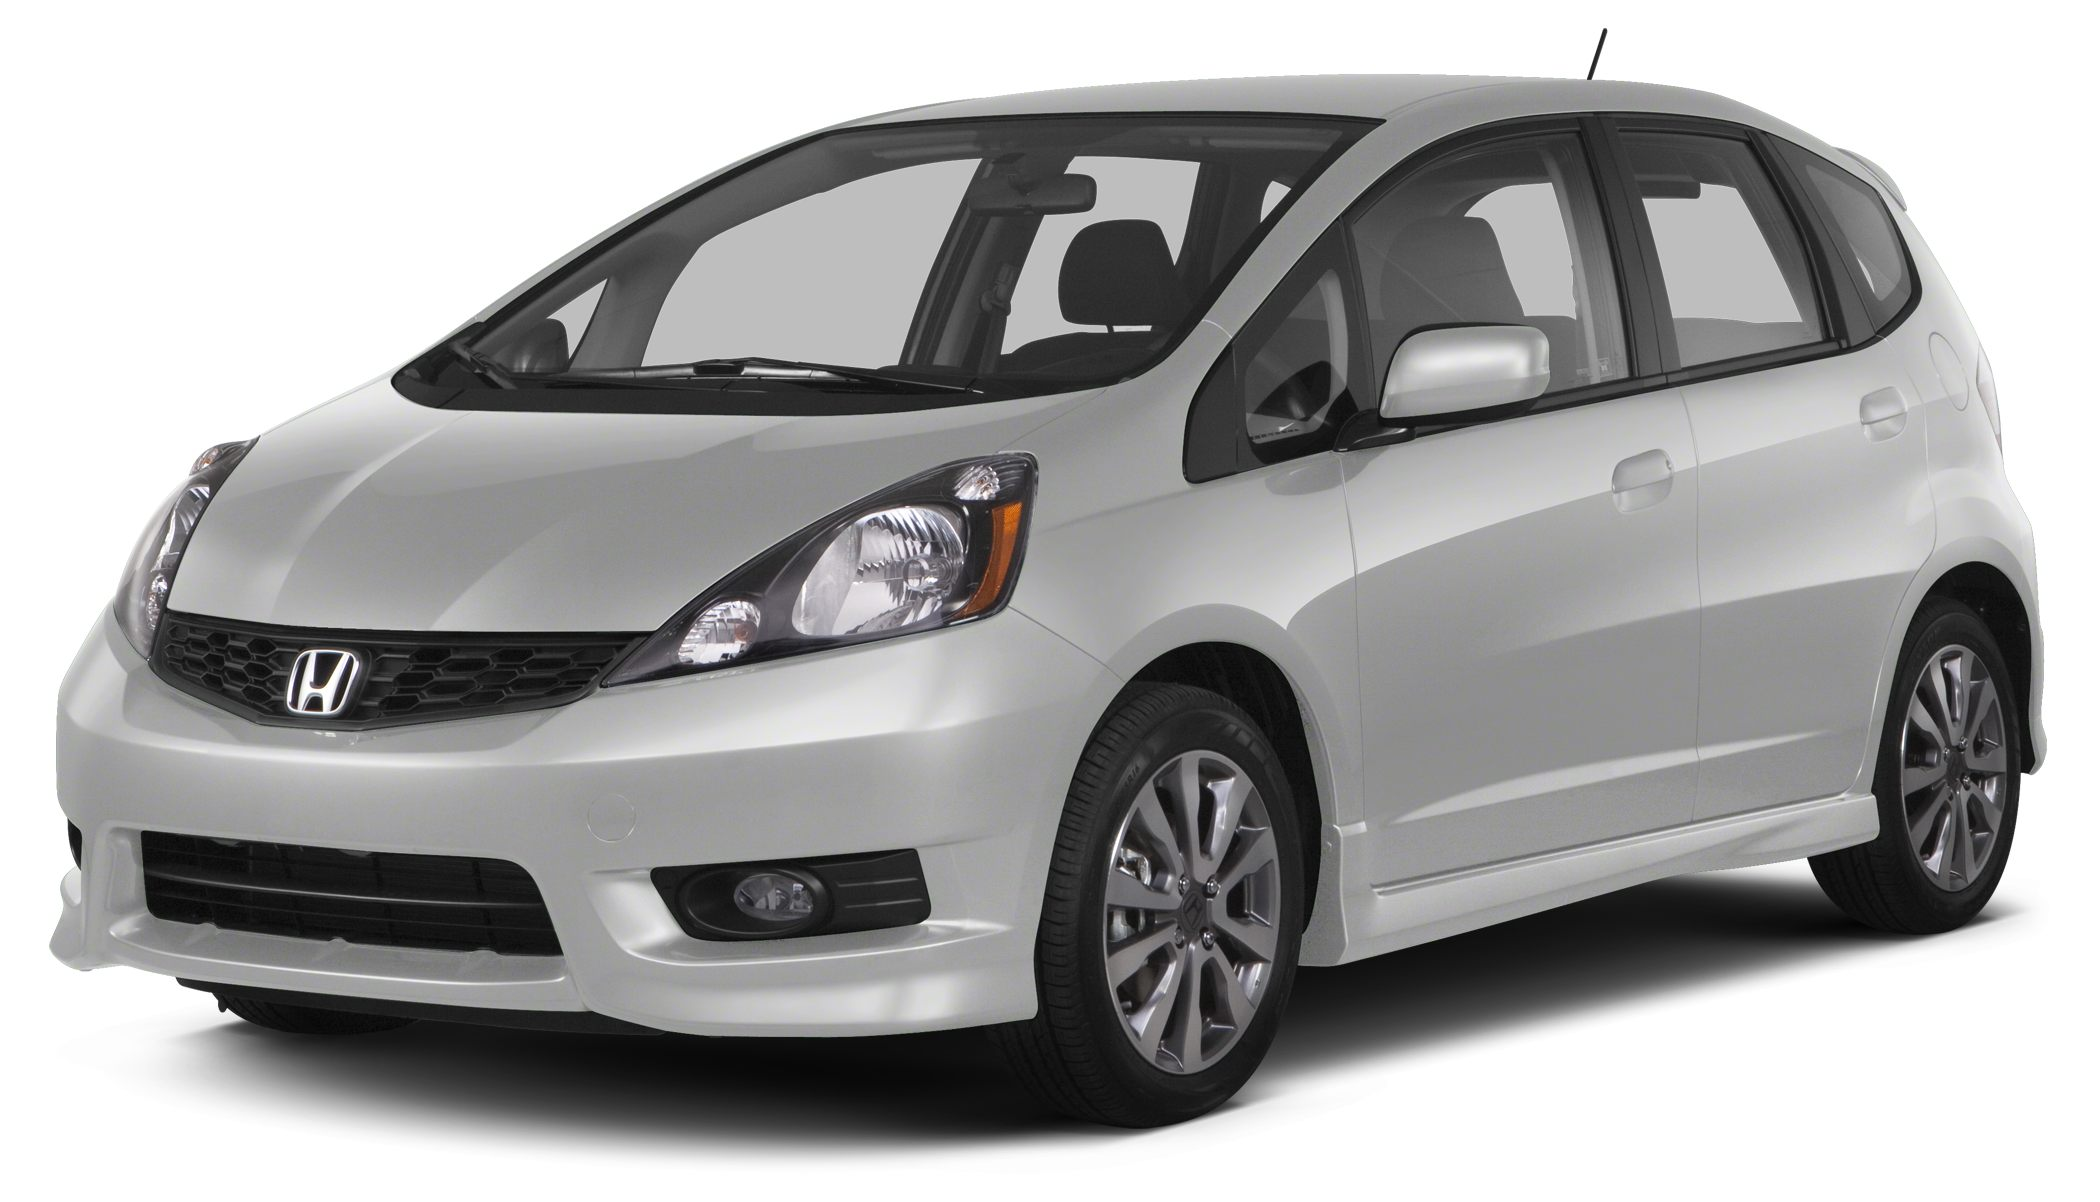 2013 Honda Fit Sport Indicators are idiot-proof So roomy passengers travel cage-freeYour quest